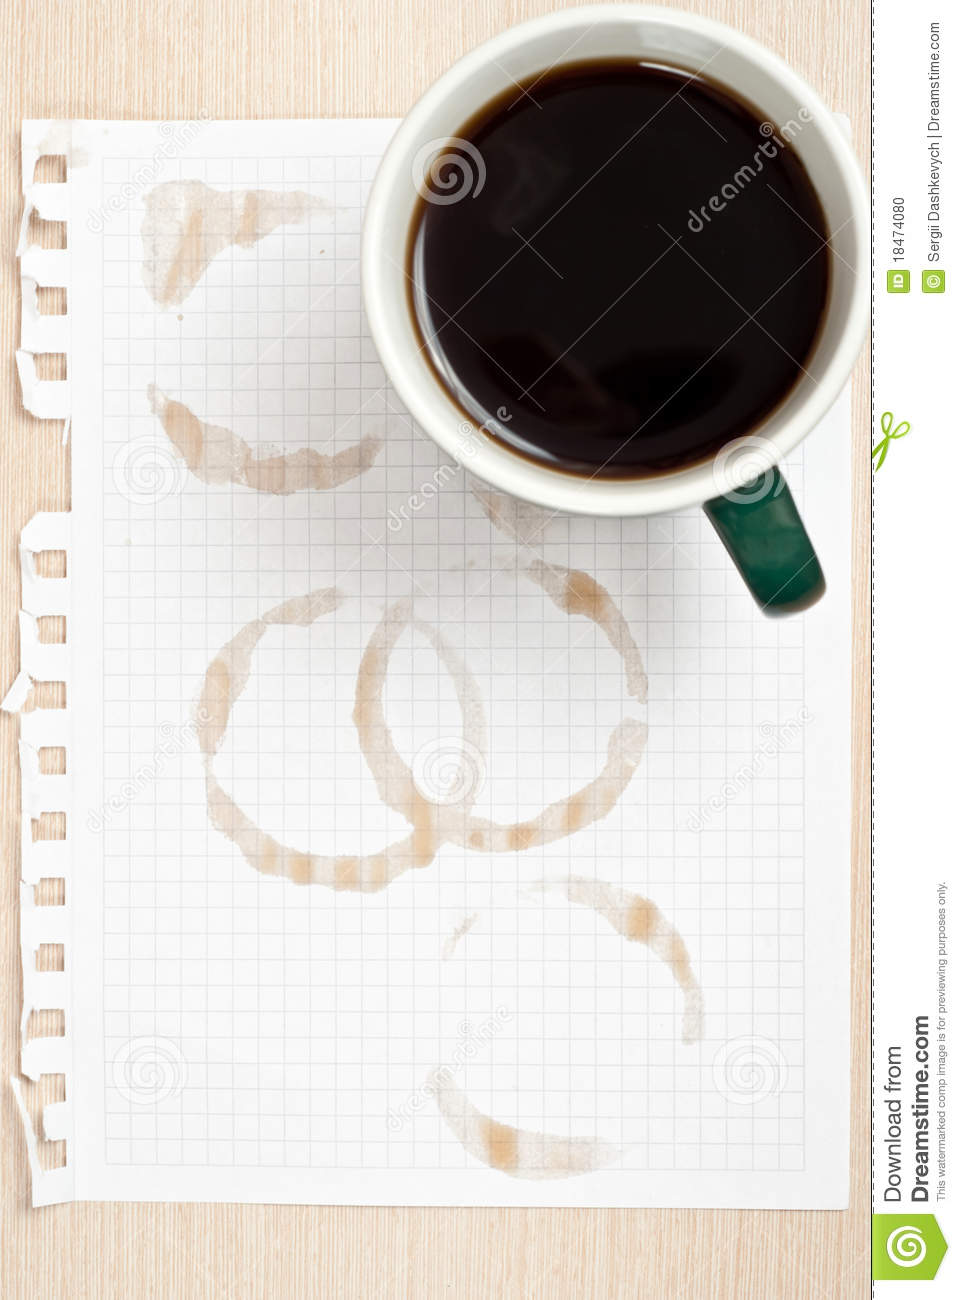 Coffee Ring On Paper Stock Photo - Image: 18474080